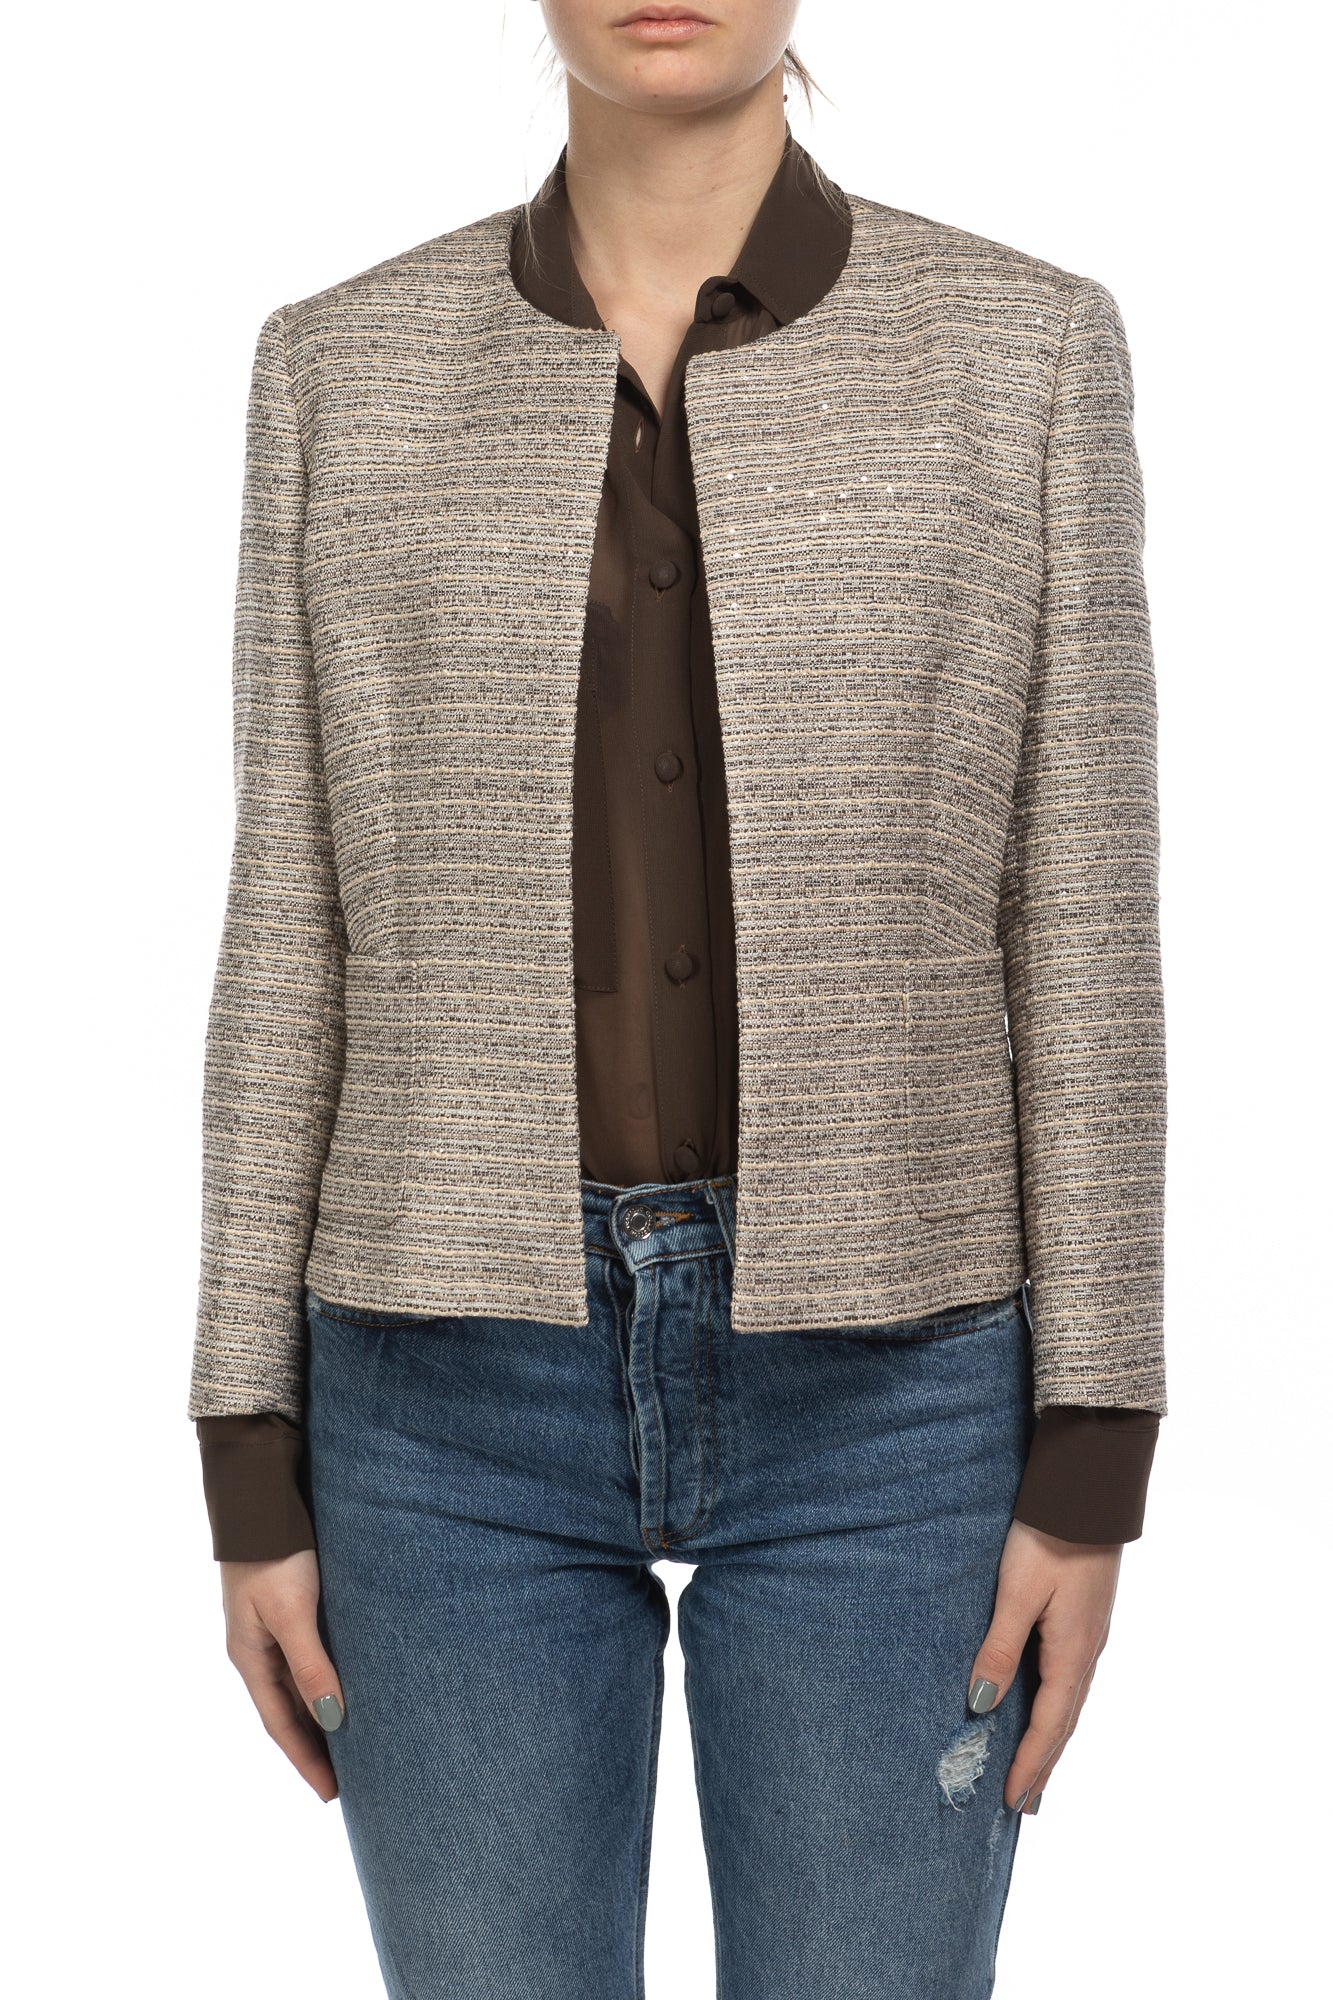 Giacca 'Lucy' in tweed di colore beige e melange